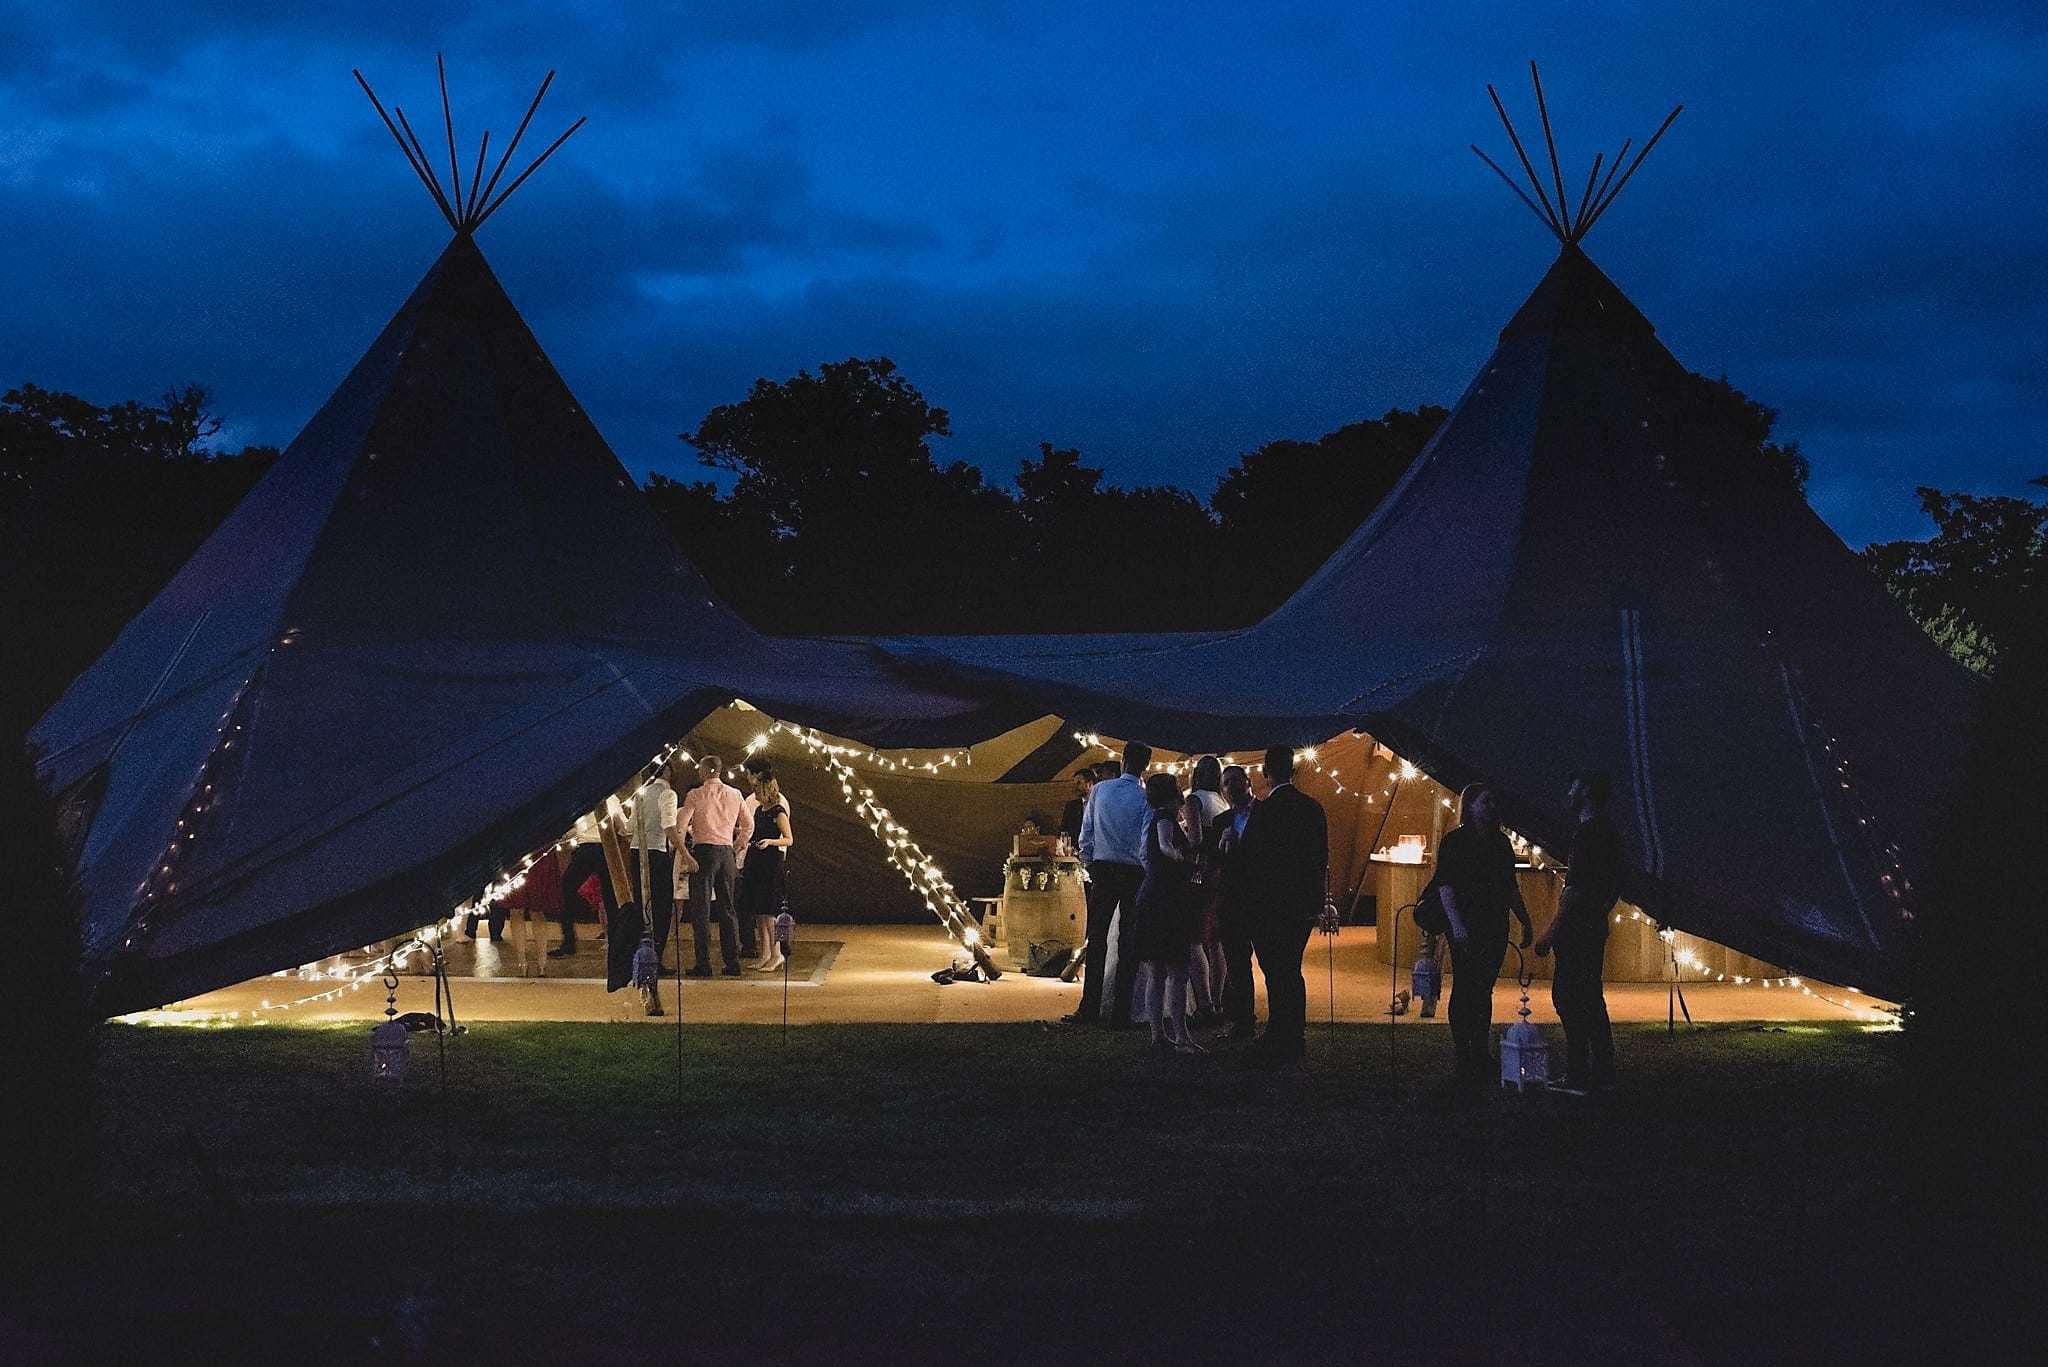 Tipi lit up at night